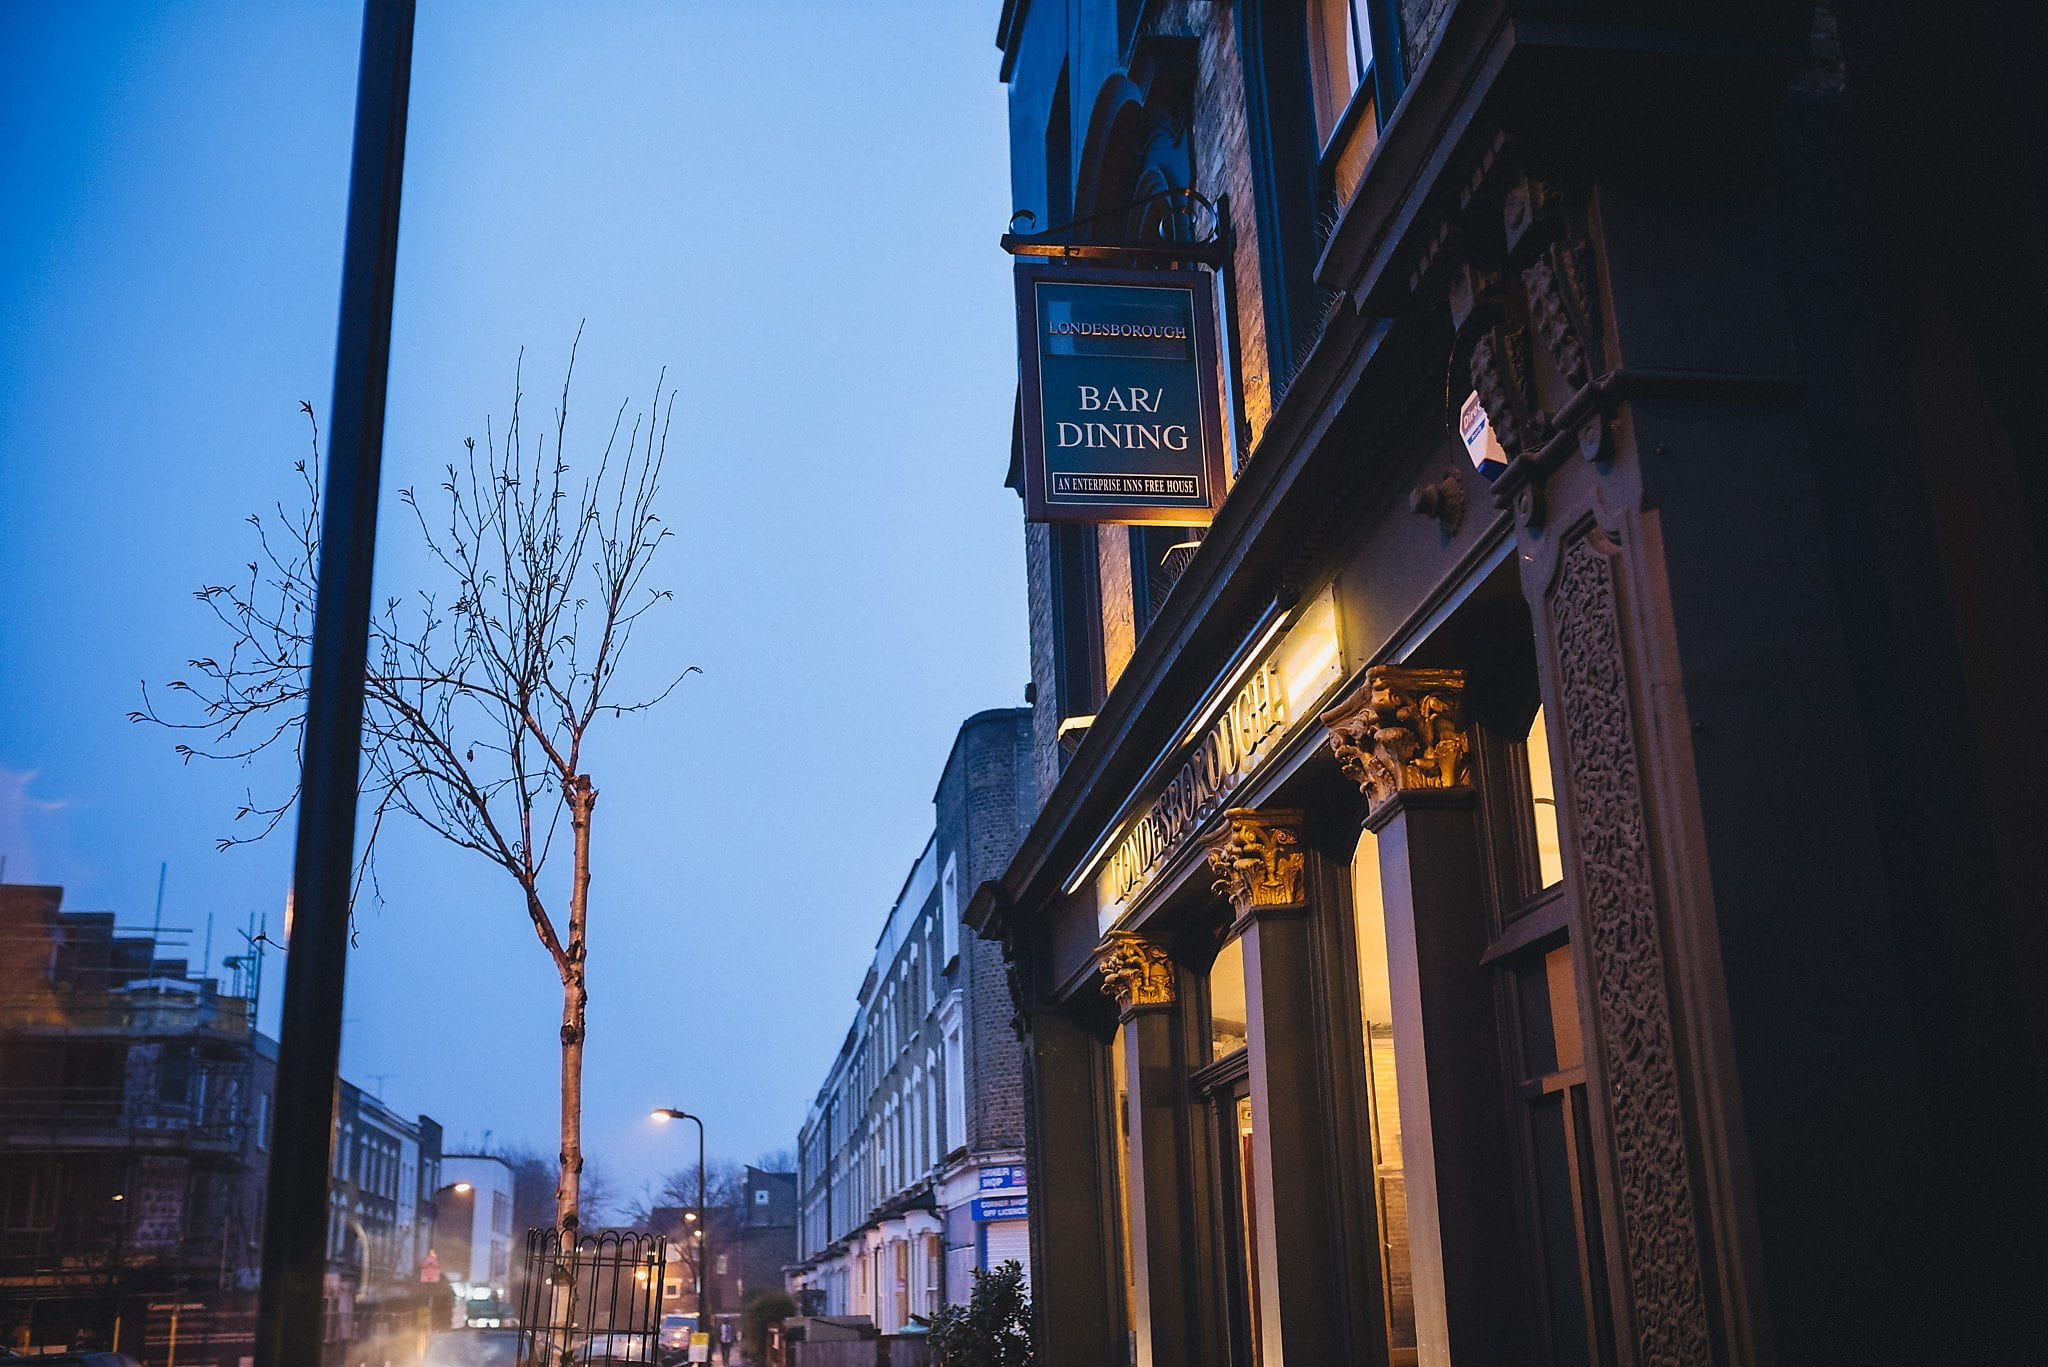 External shot of The Londesborough pub at dusk